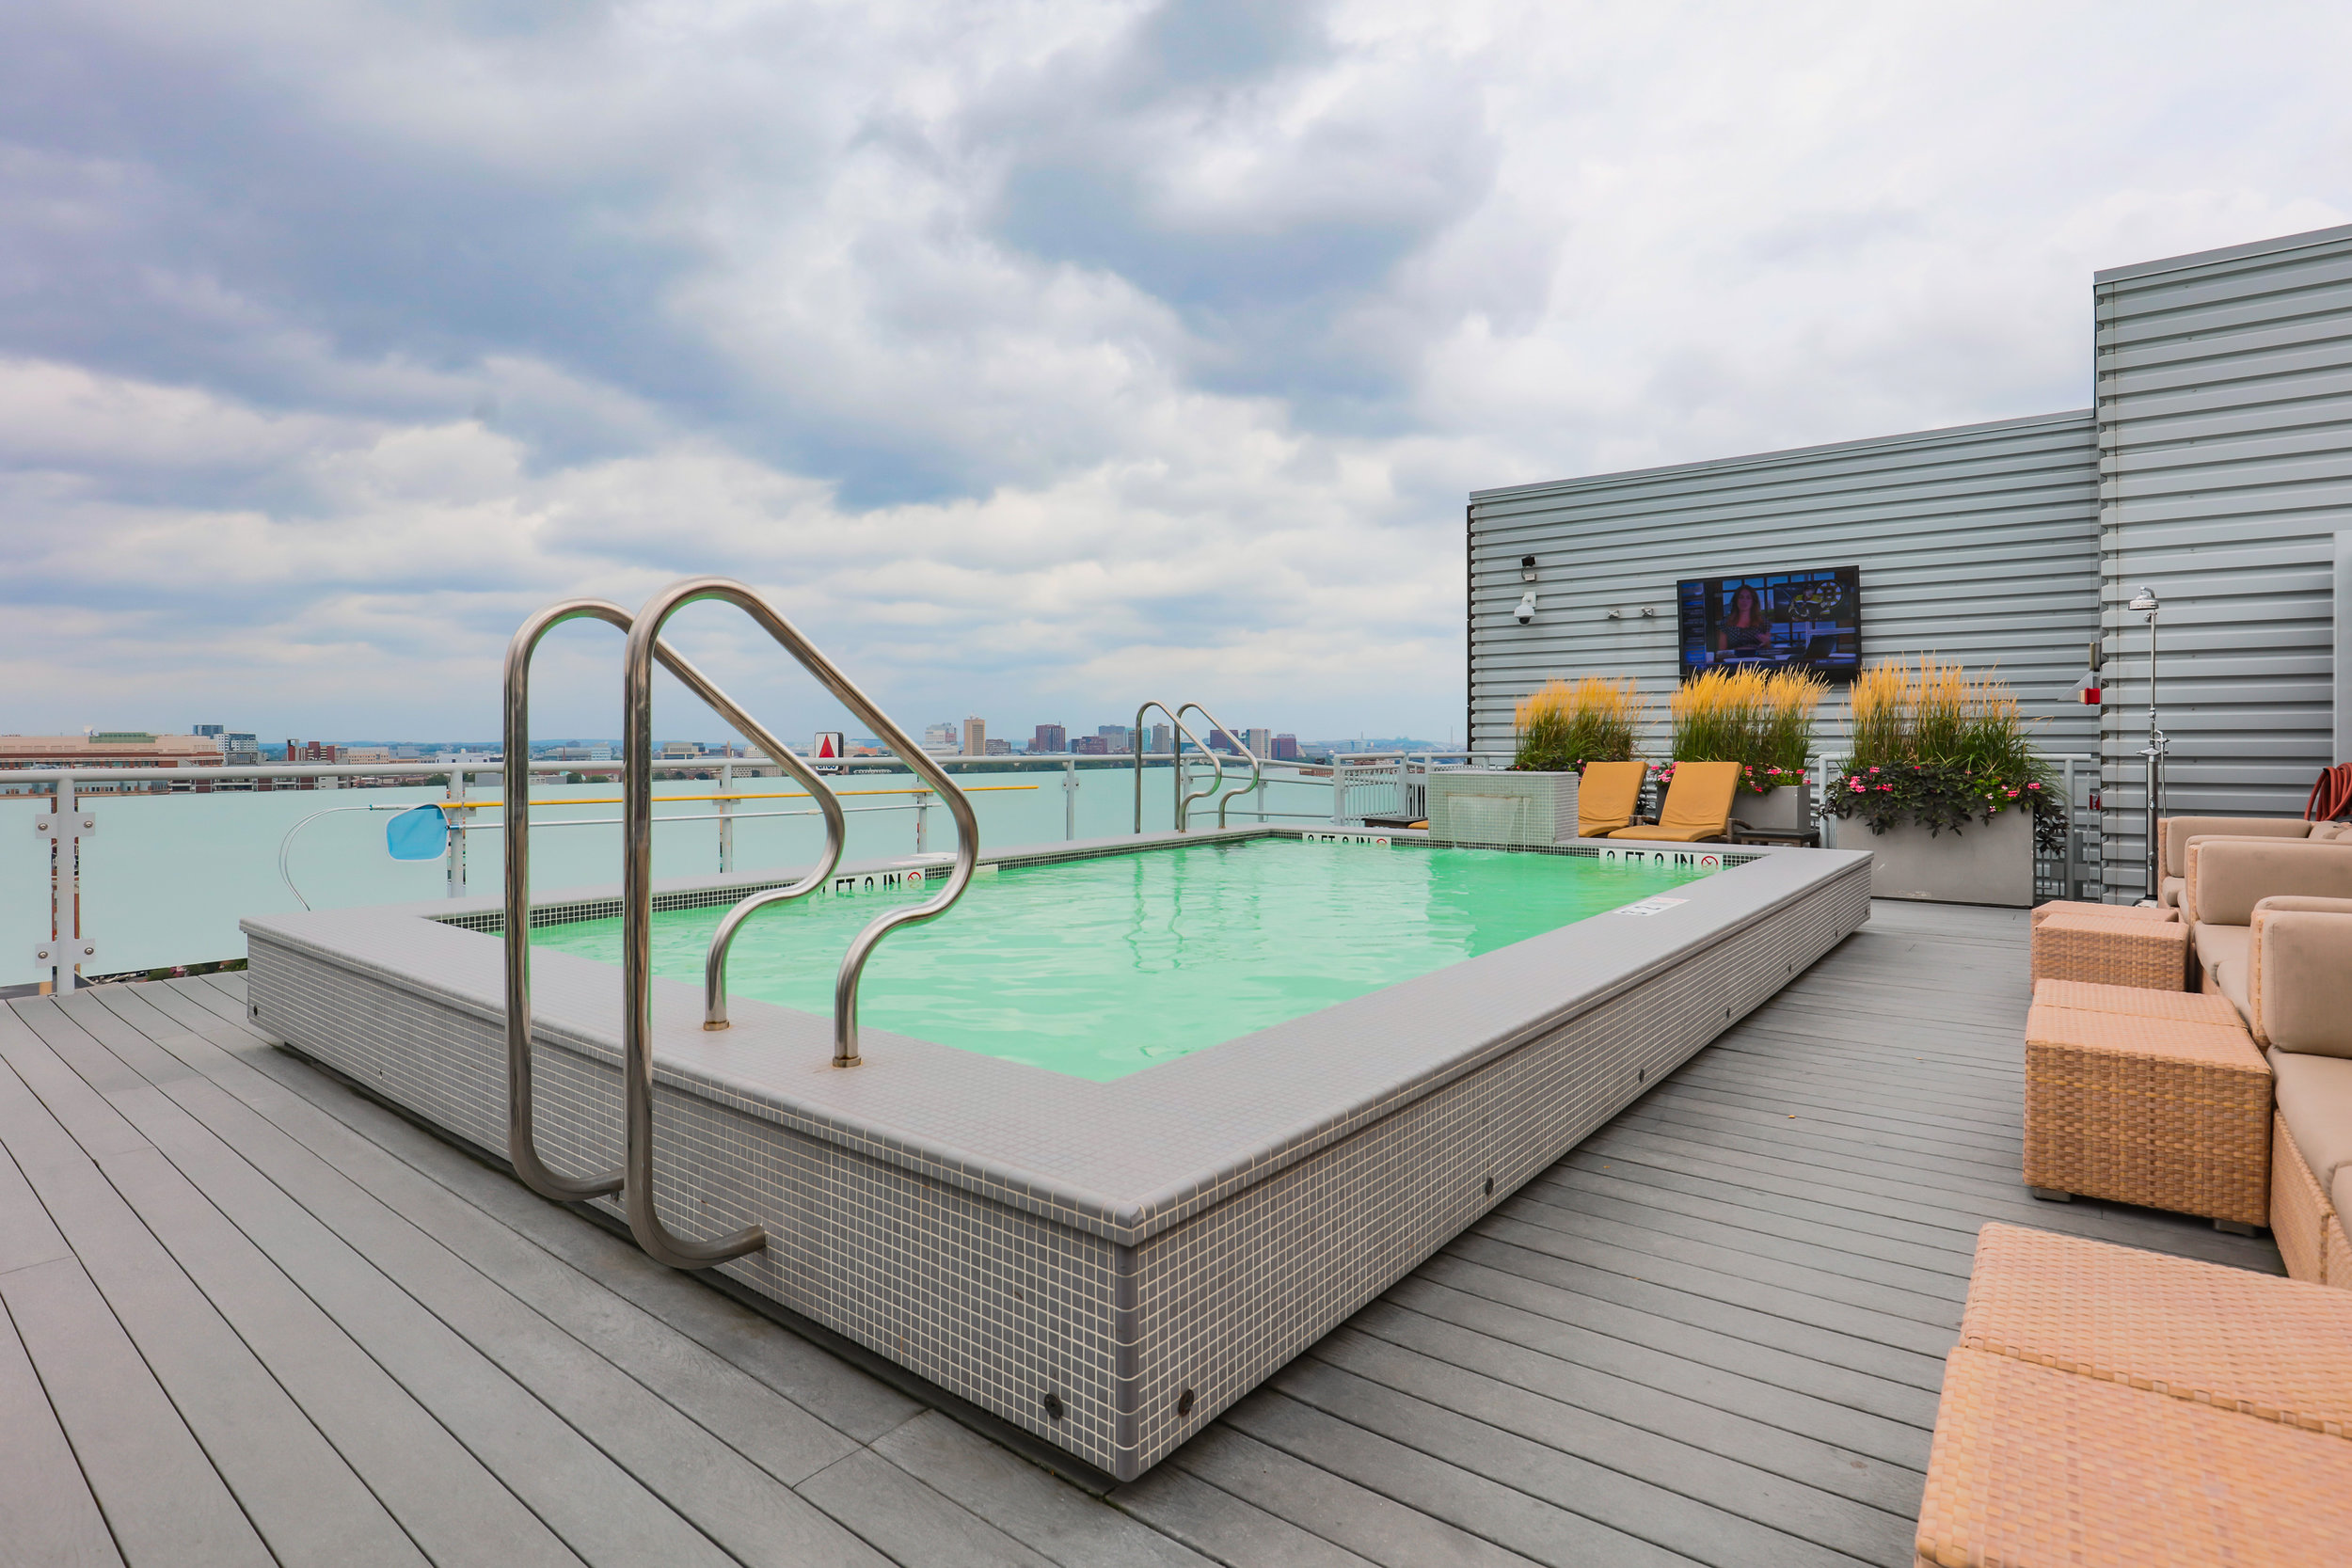 While this may not be one of my favorite photos, it's definitely one of the best spaces I have seen recently. Yes, the rooftop pool overlooks Fenway Park. If you squint, you can even see the Citgo sign.